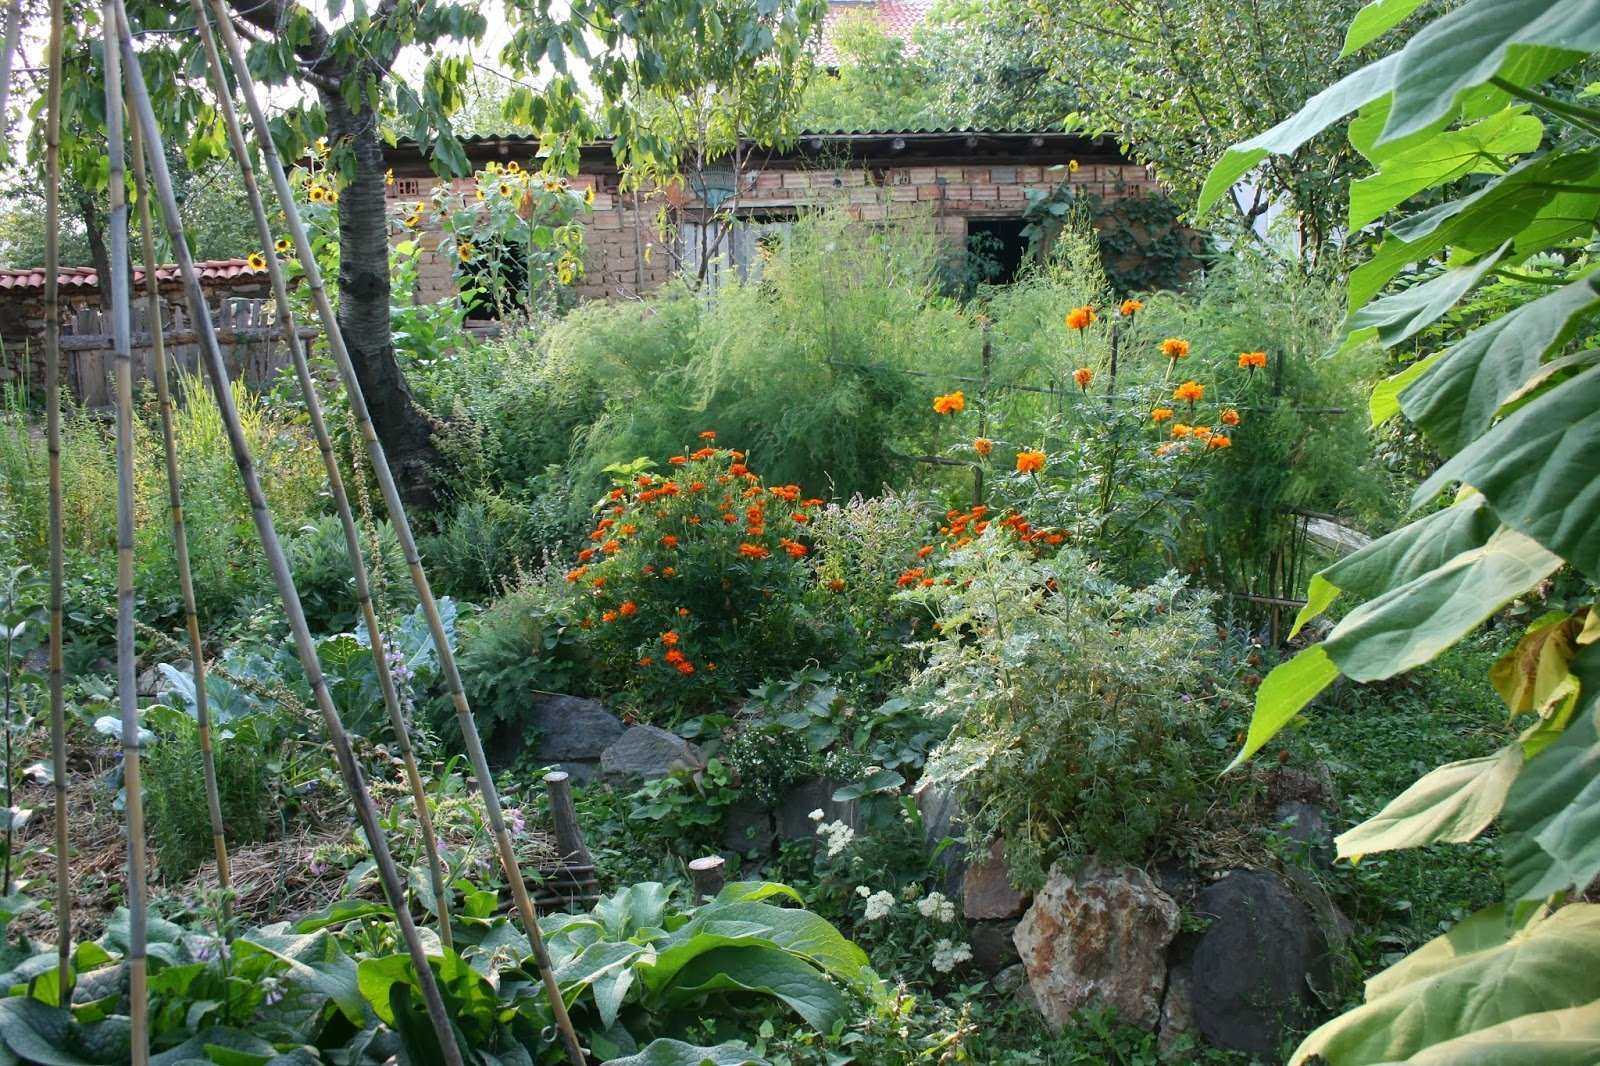 Chai Guild  - August 2013 with annual Tagetes patula and Terecta  added in the first season to fill space before the perennials grow.